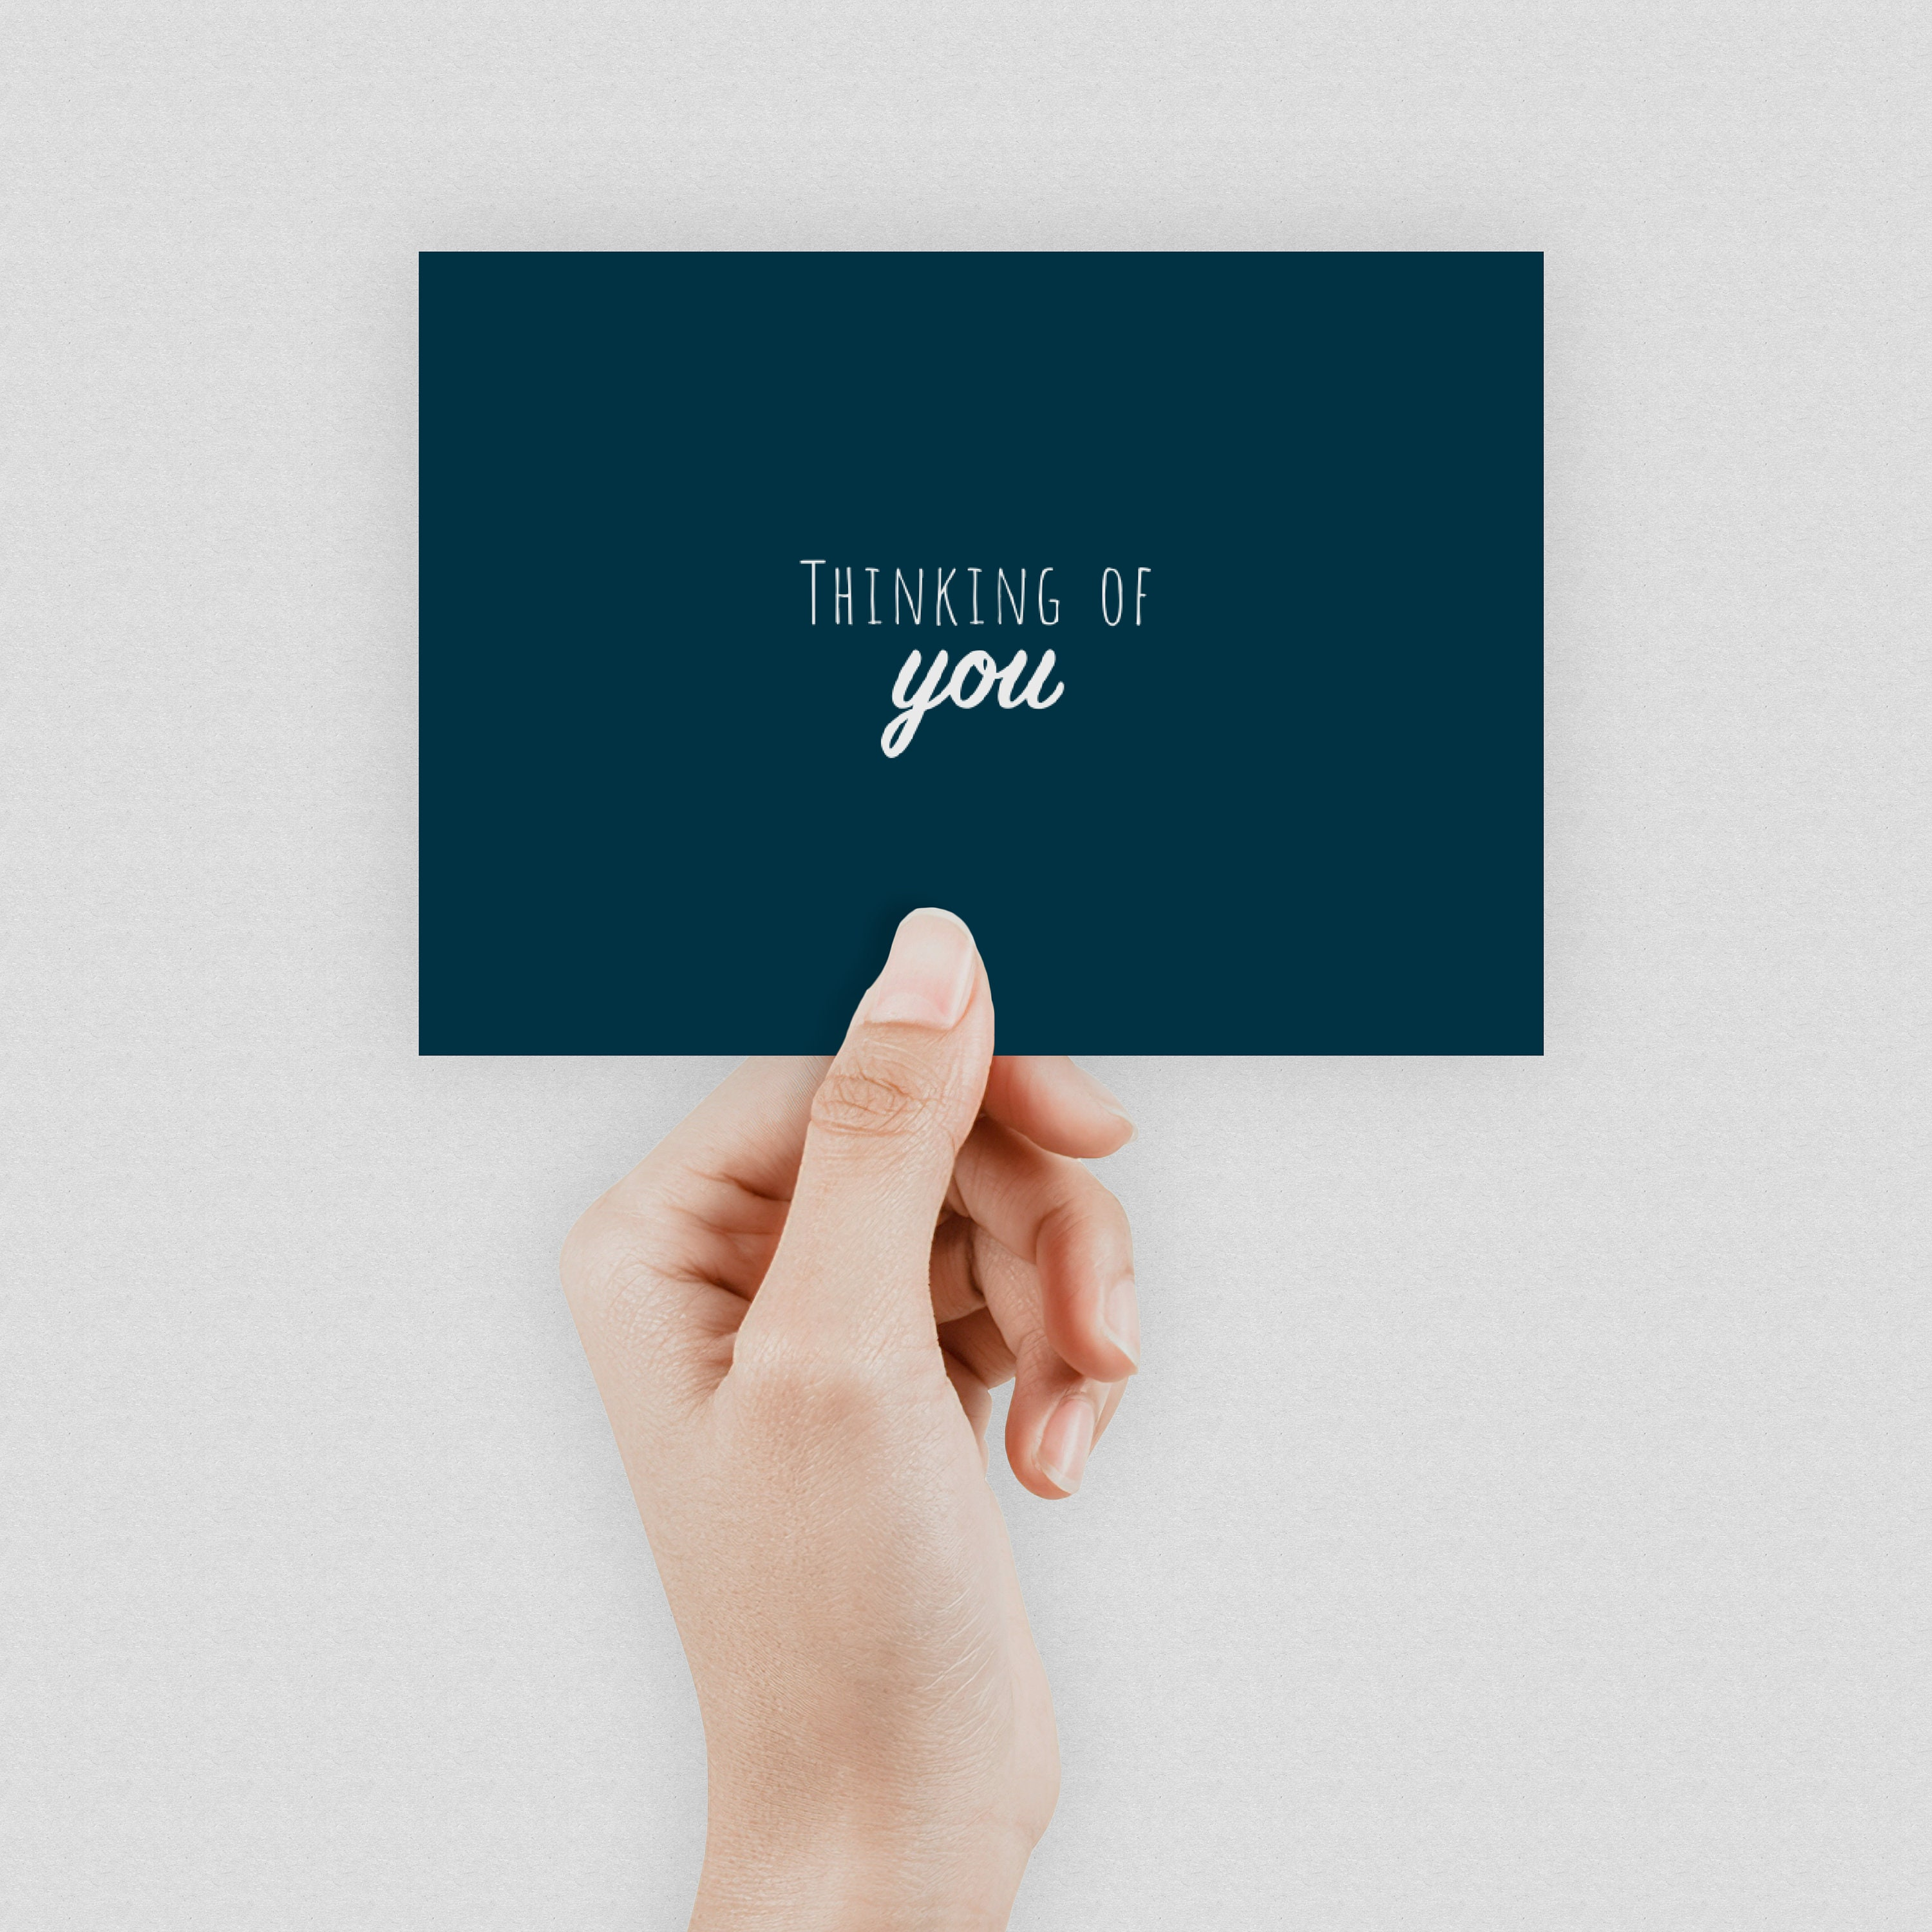 """A hand holding a dark blue postcard which says """"Thinking of you"""" in the middle"""